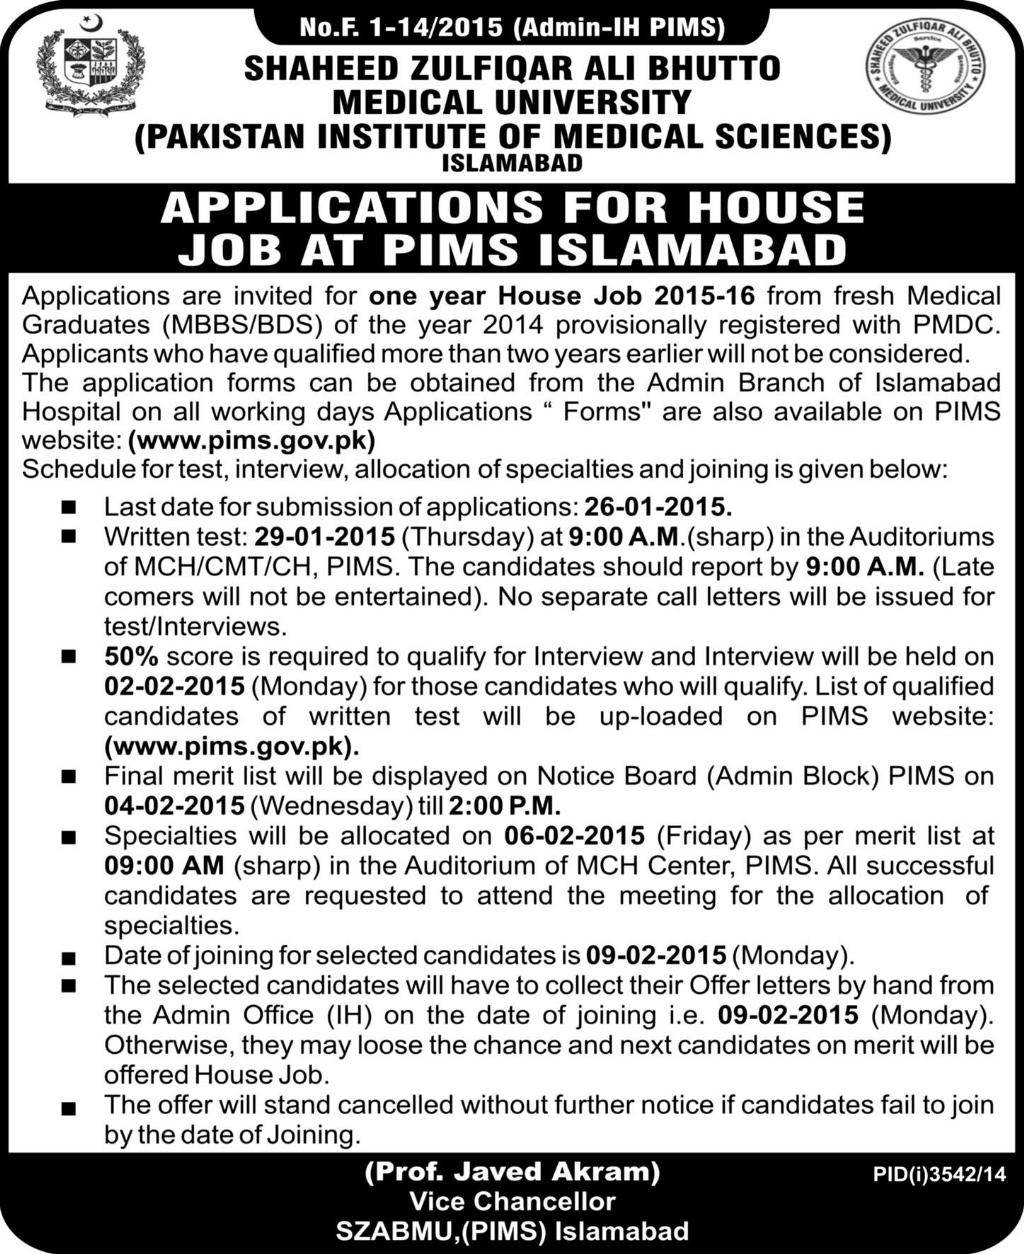 PIMS Hospital Islamabad House Job 2015 Application Form